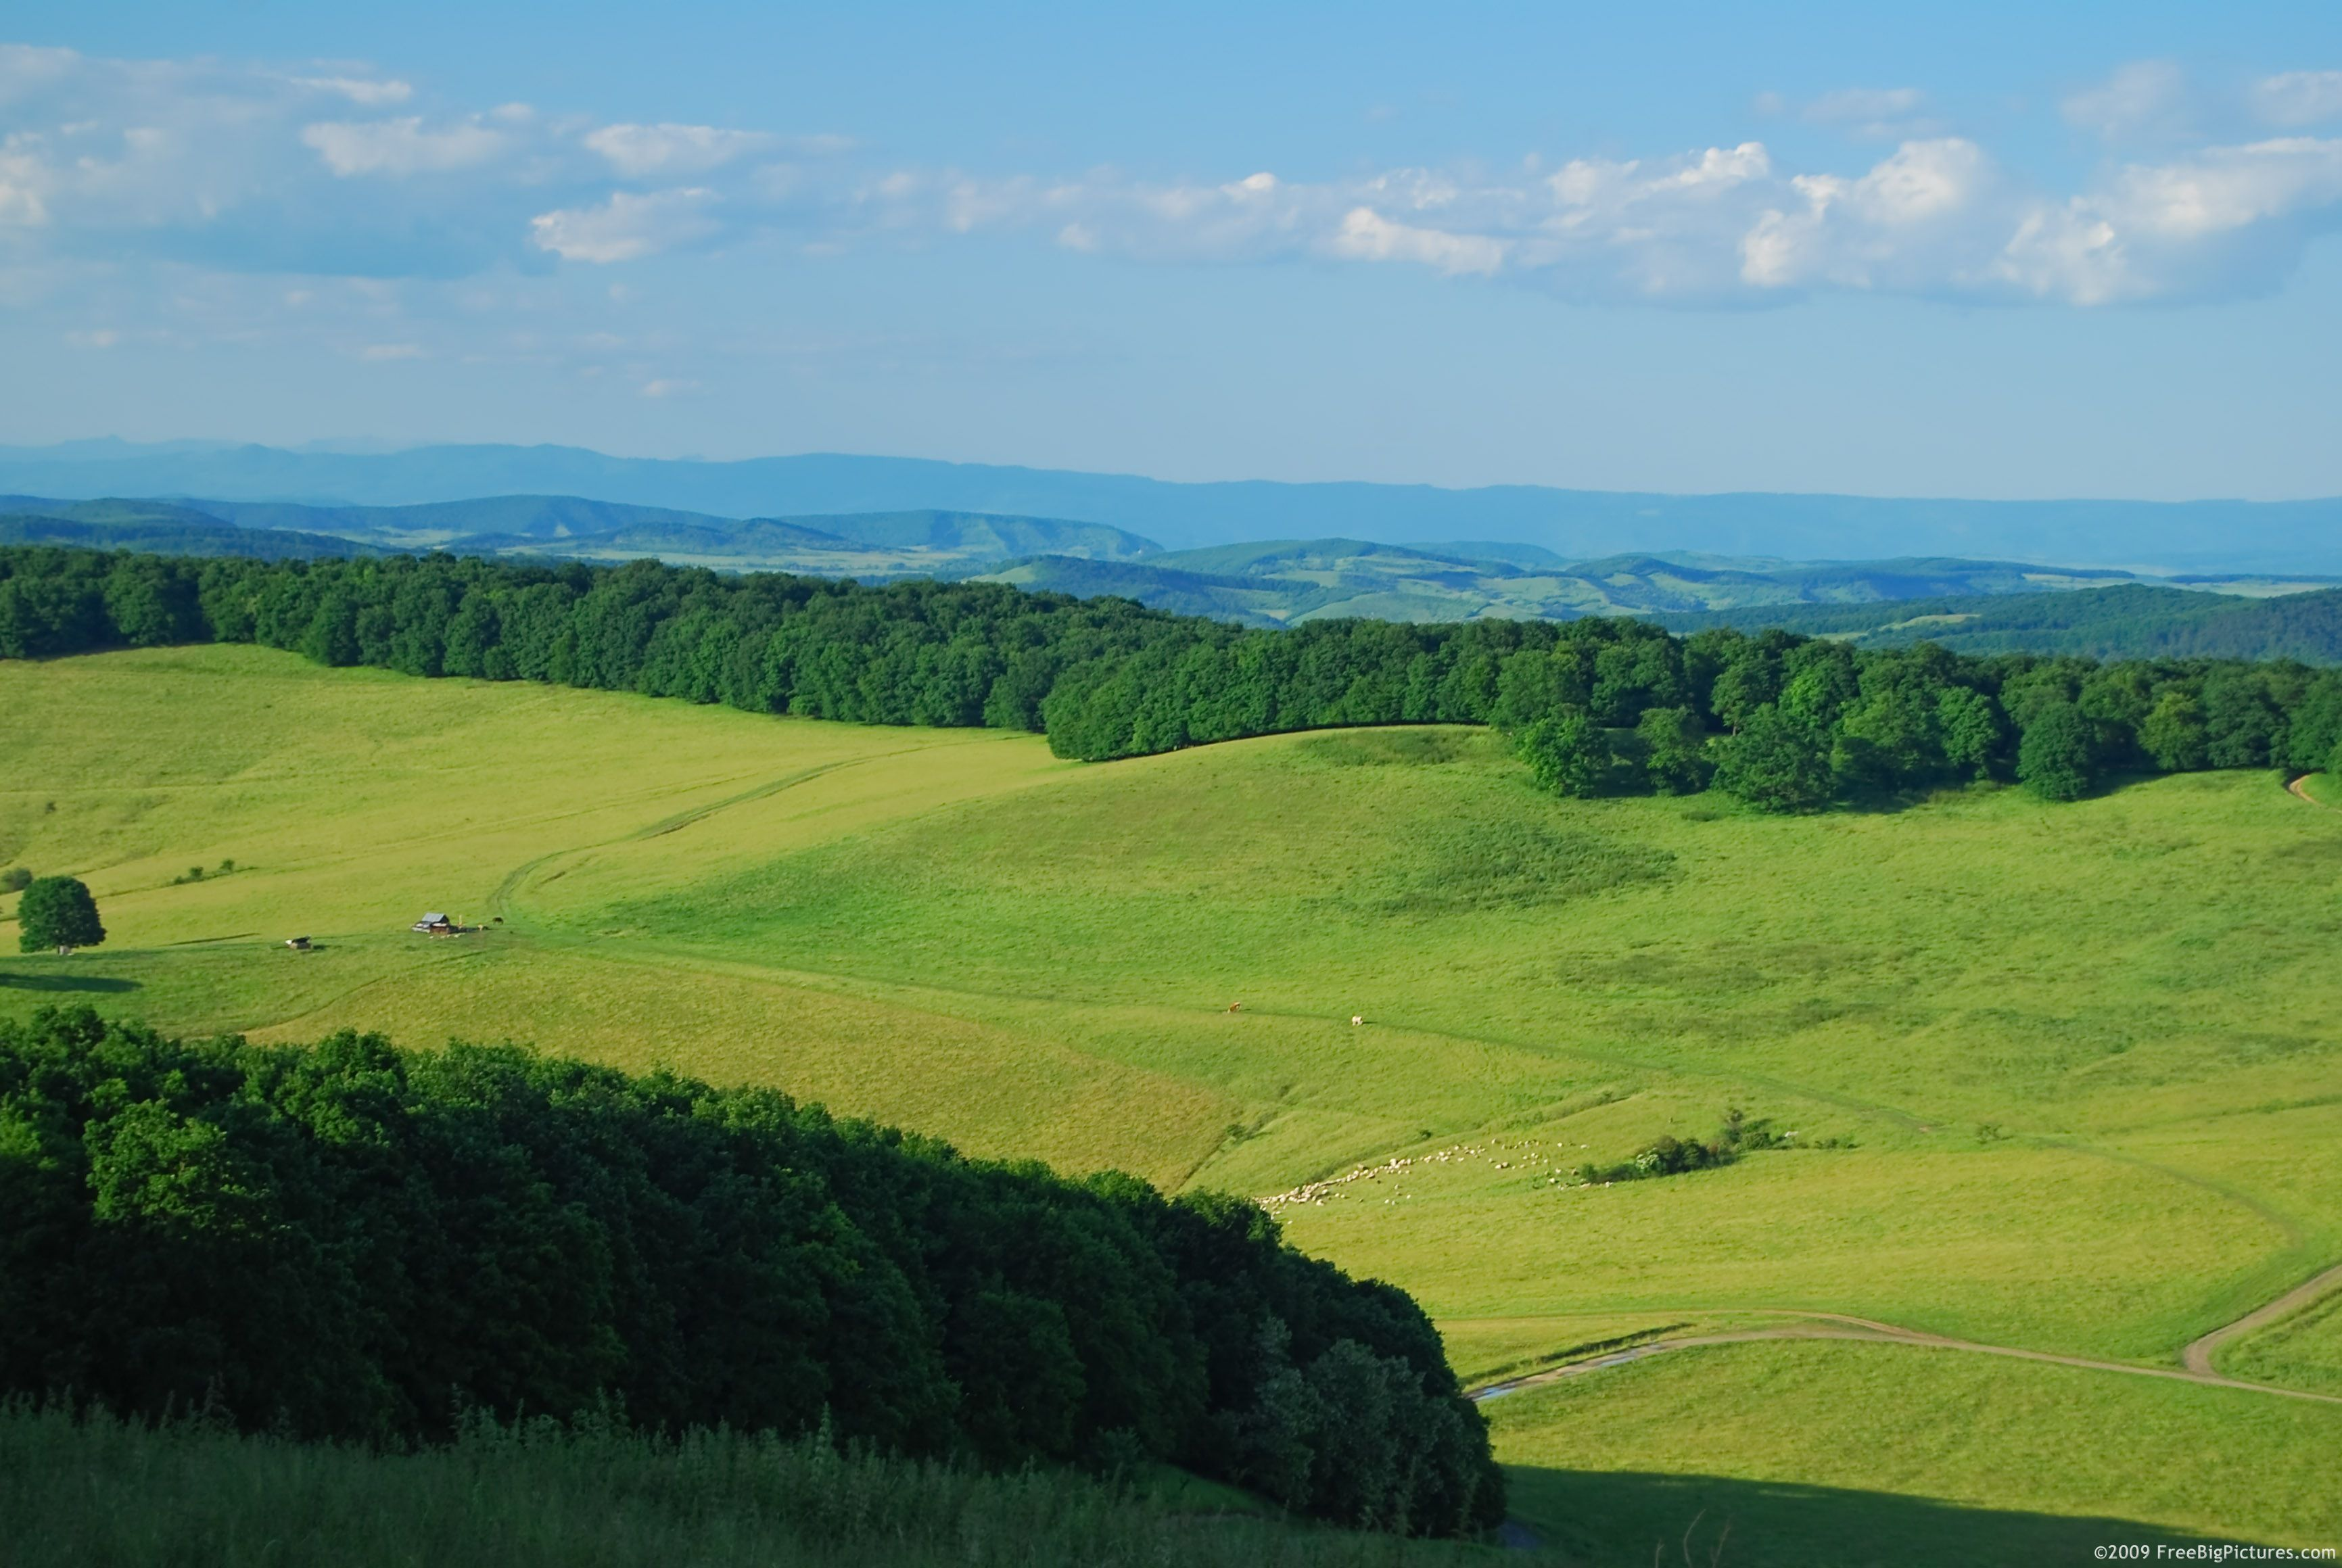 Pictures Of Summer High Resolution Pictures Green Hills Is A Comely Image Summer Hill Summer Pictures Seasons Of The Year